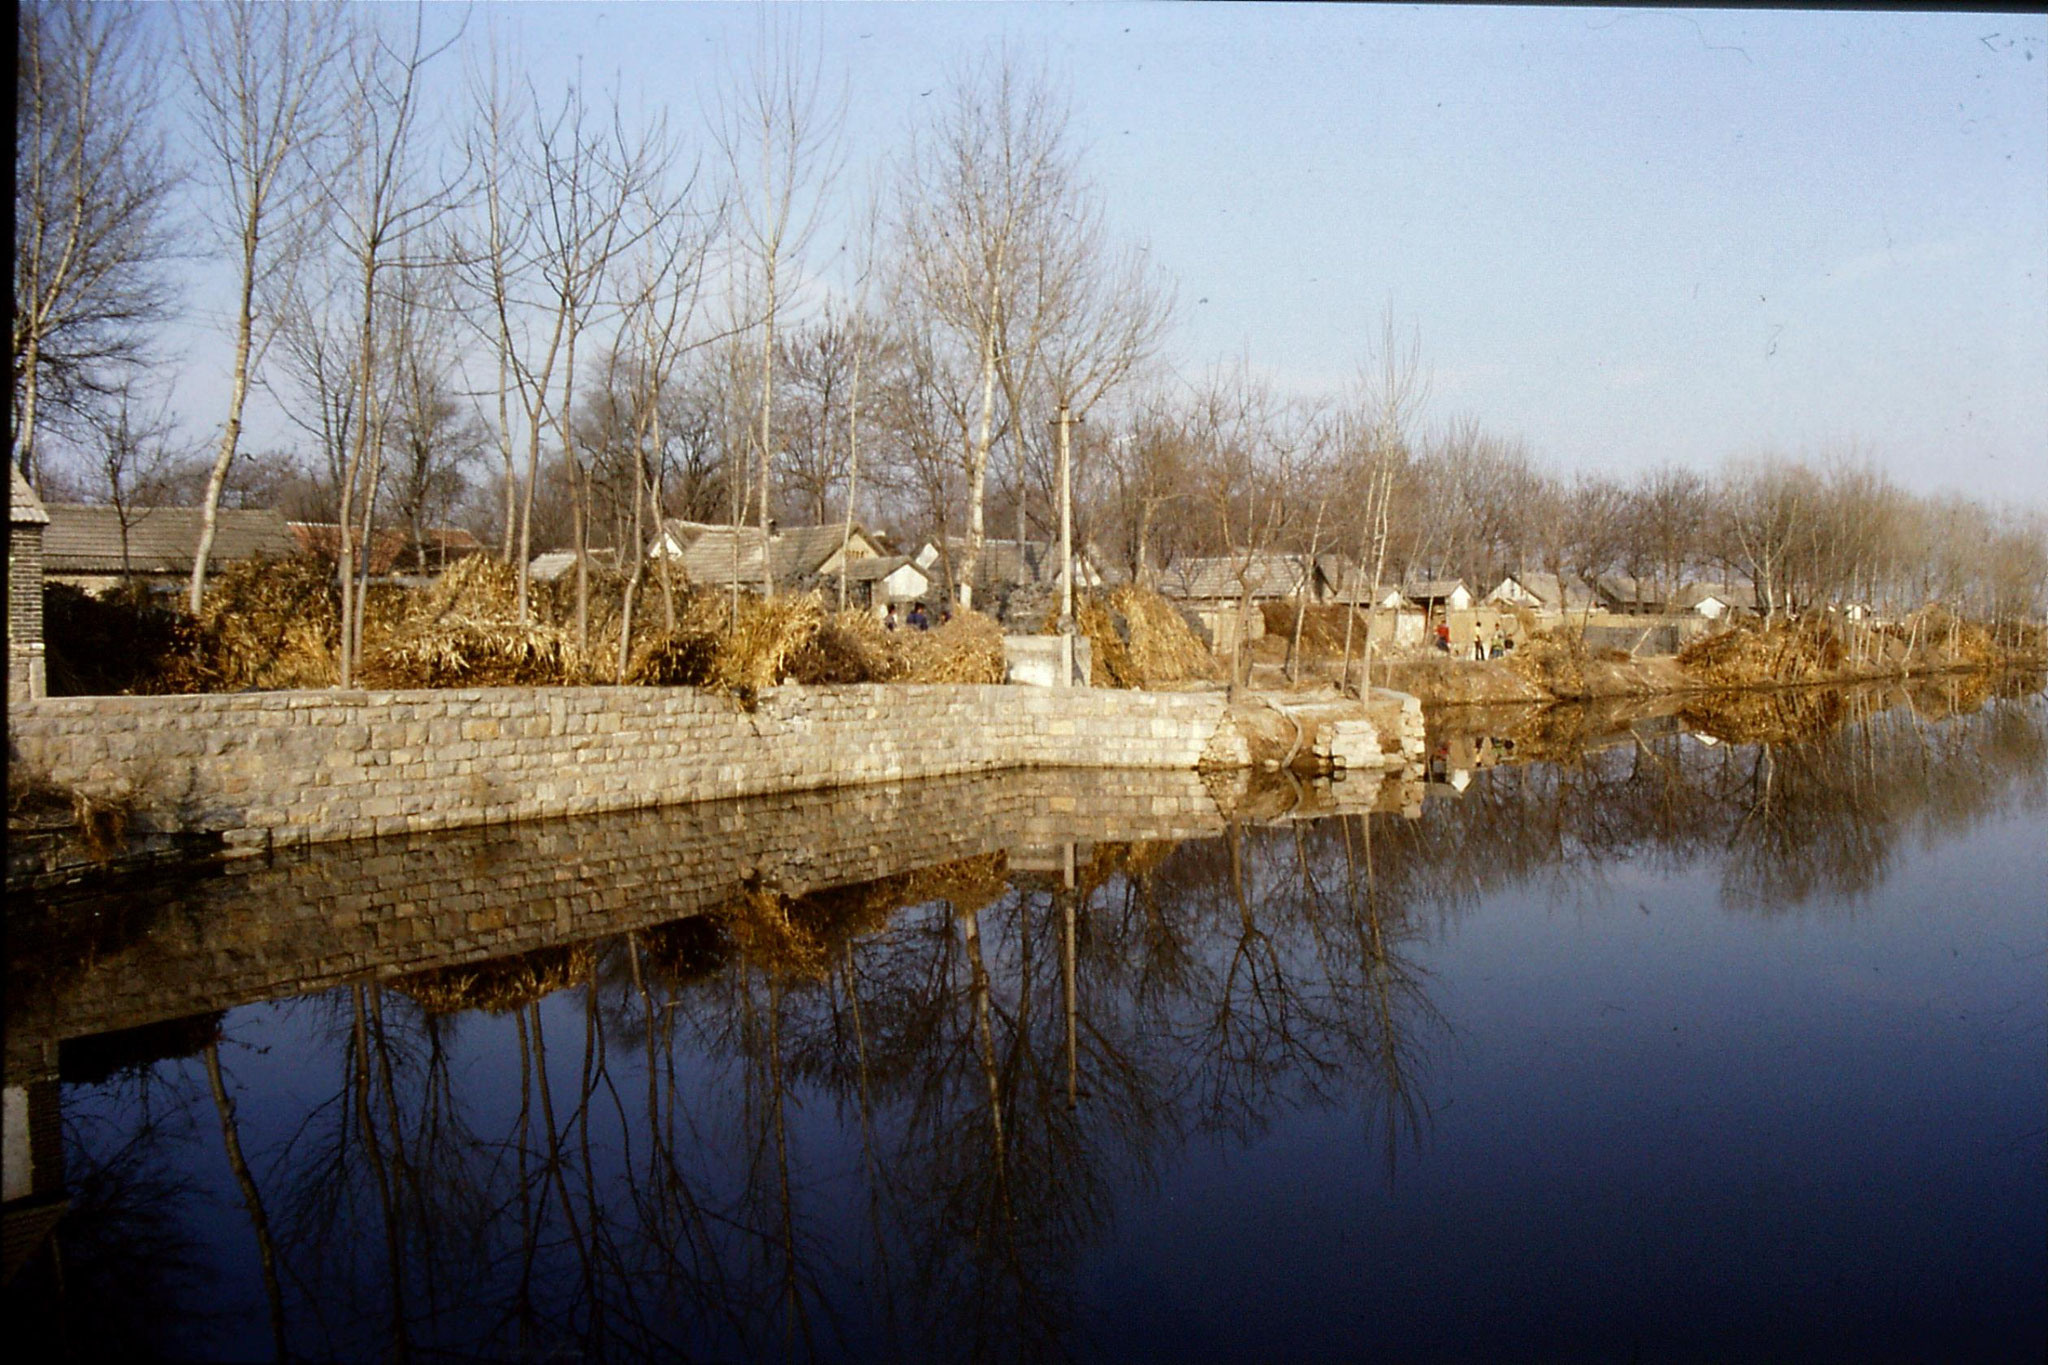 21/2/1989: 5: village near Shao Hao tomb